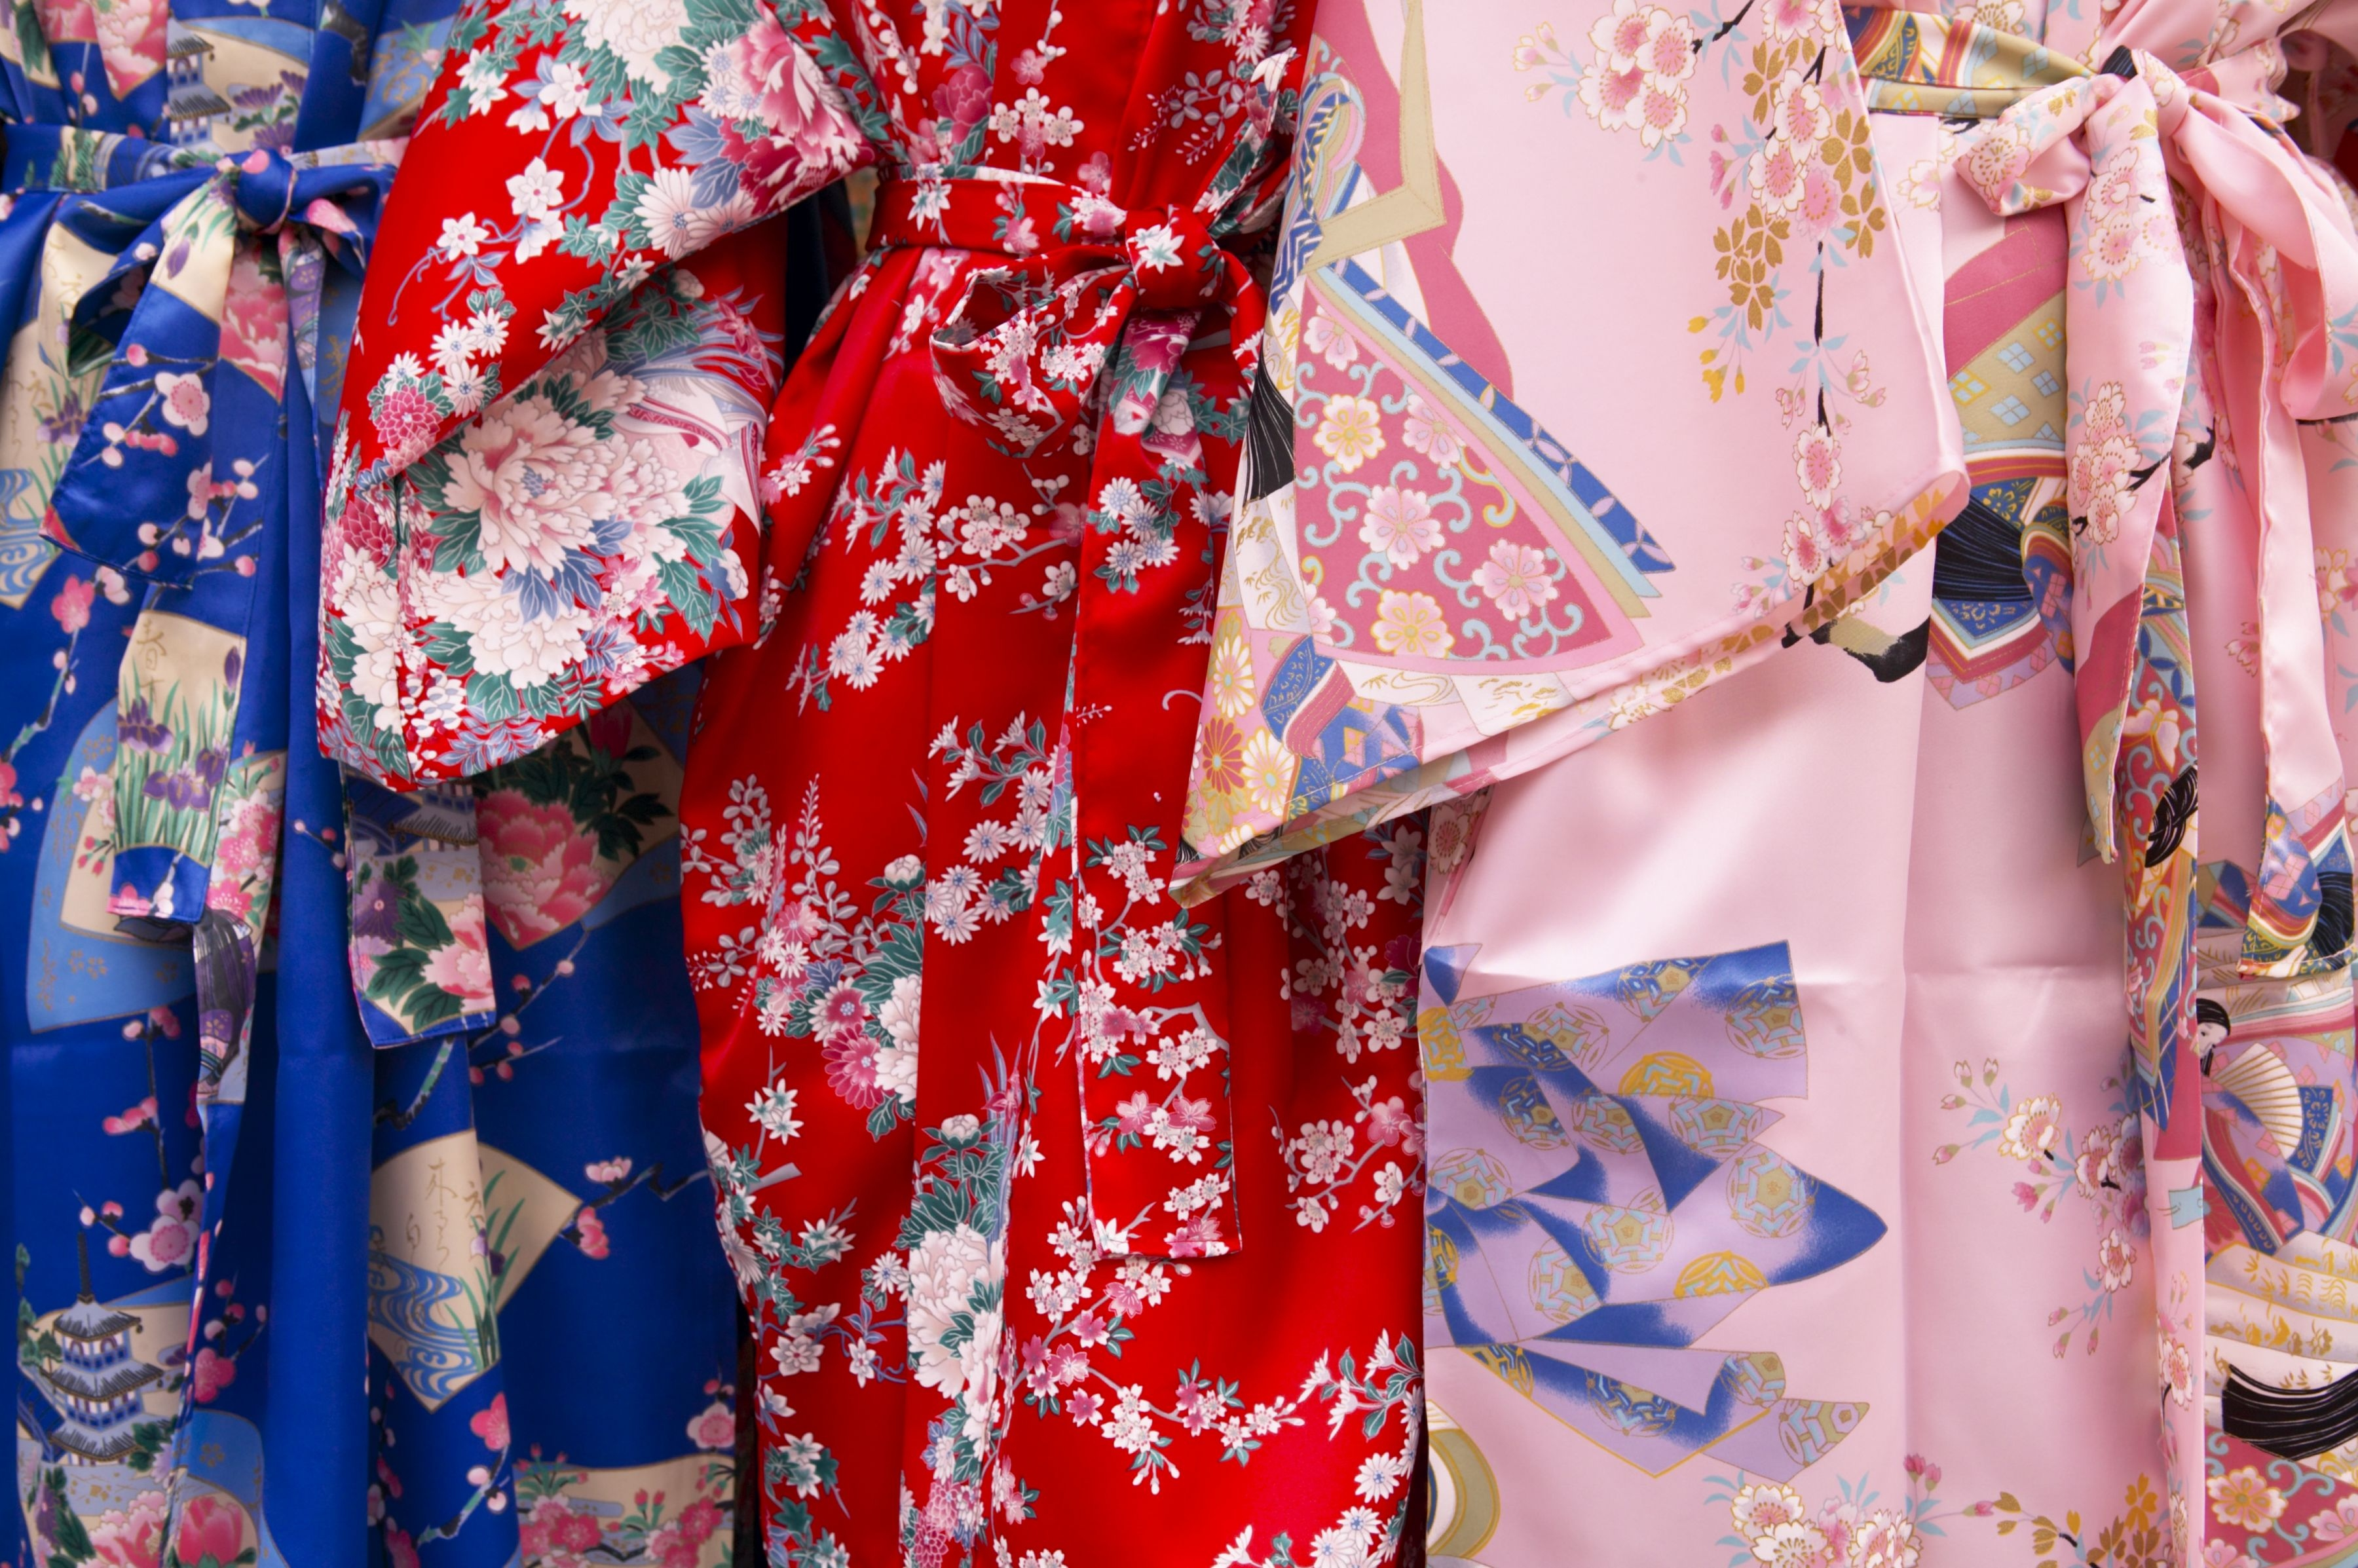 What Is The Meaning Of Color In Japanese Culture